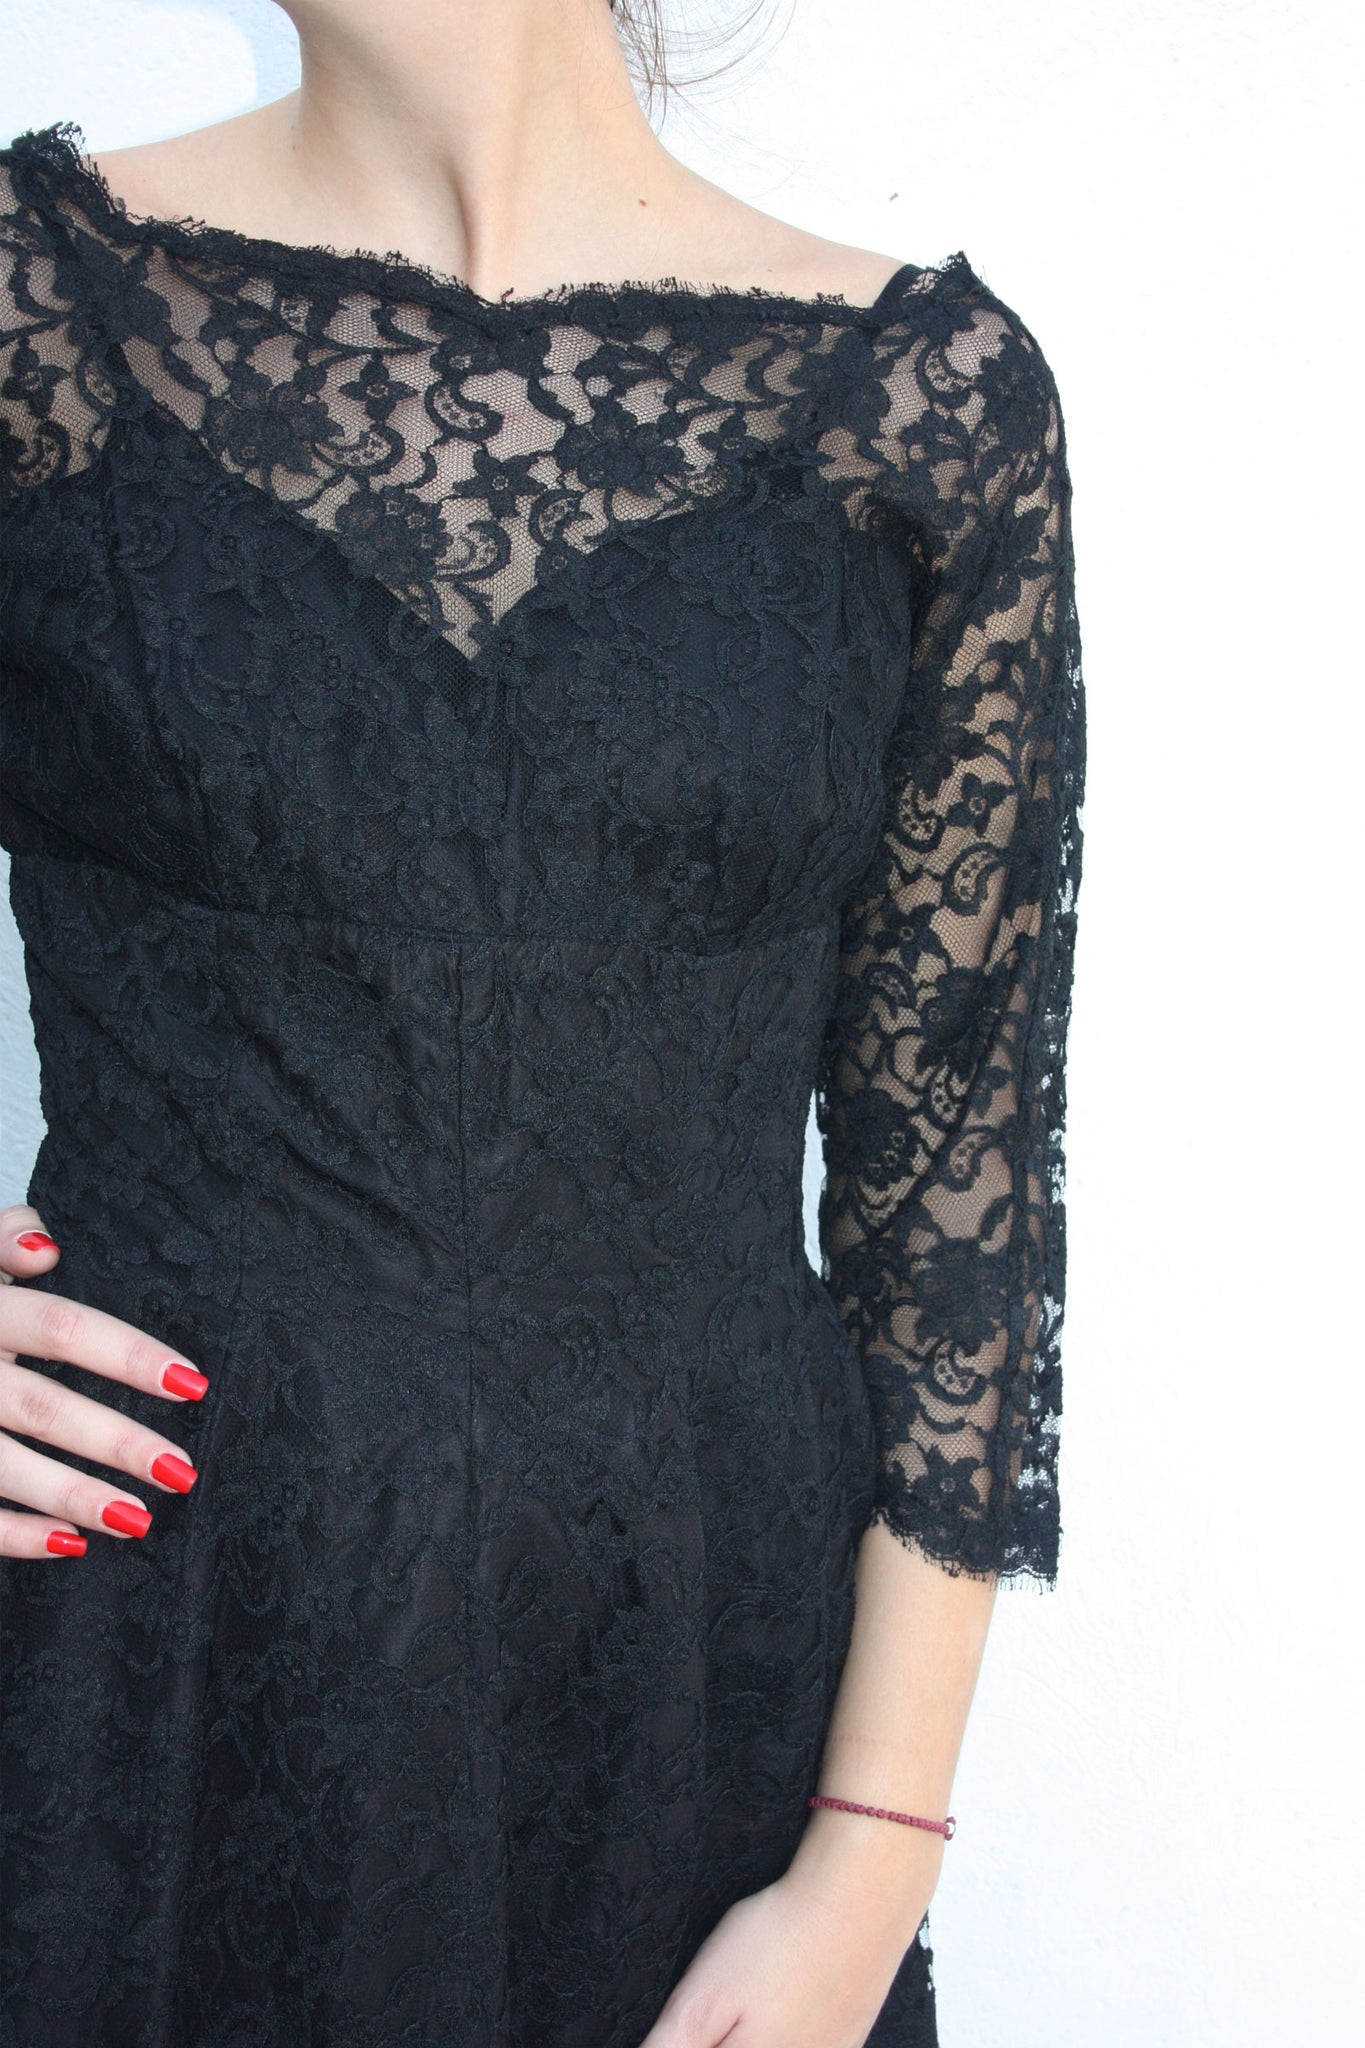 50's black vintage lace dress - Shop SoLovesVintage